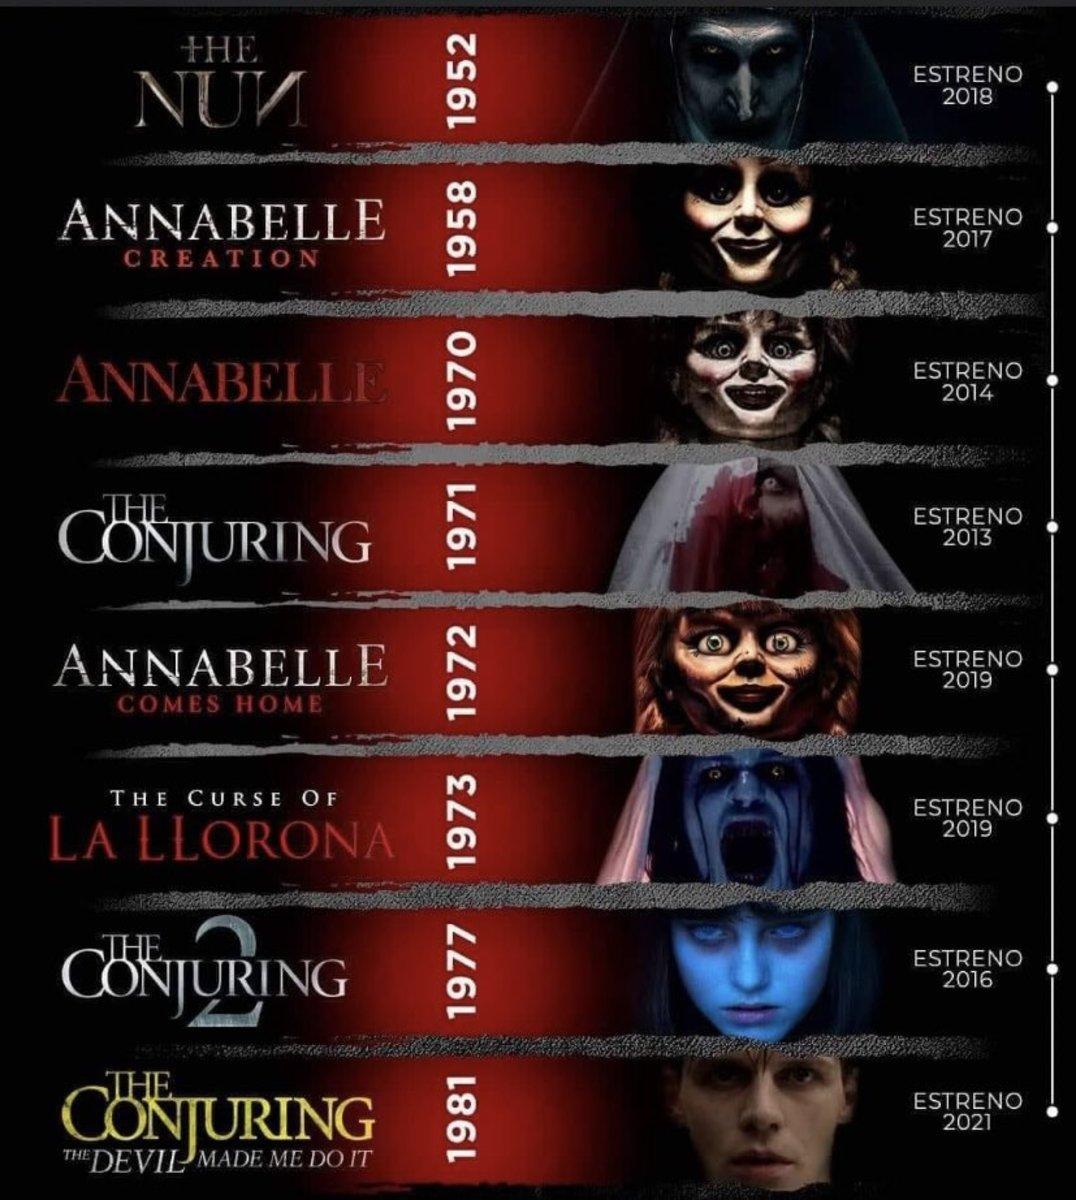 'The Conjuring' Universe in chronological order.